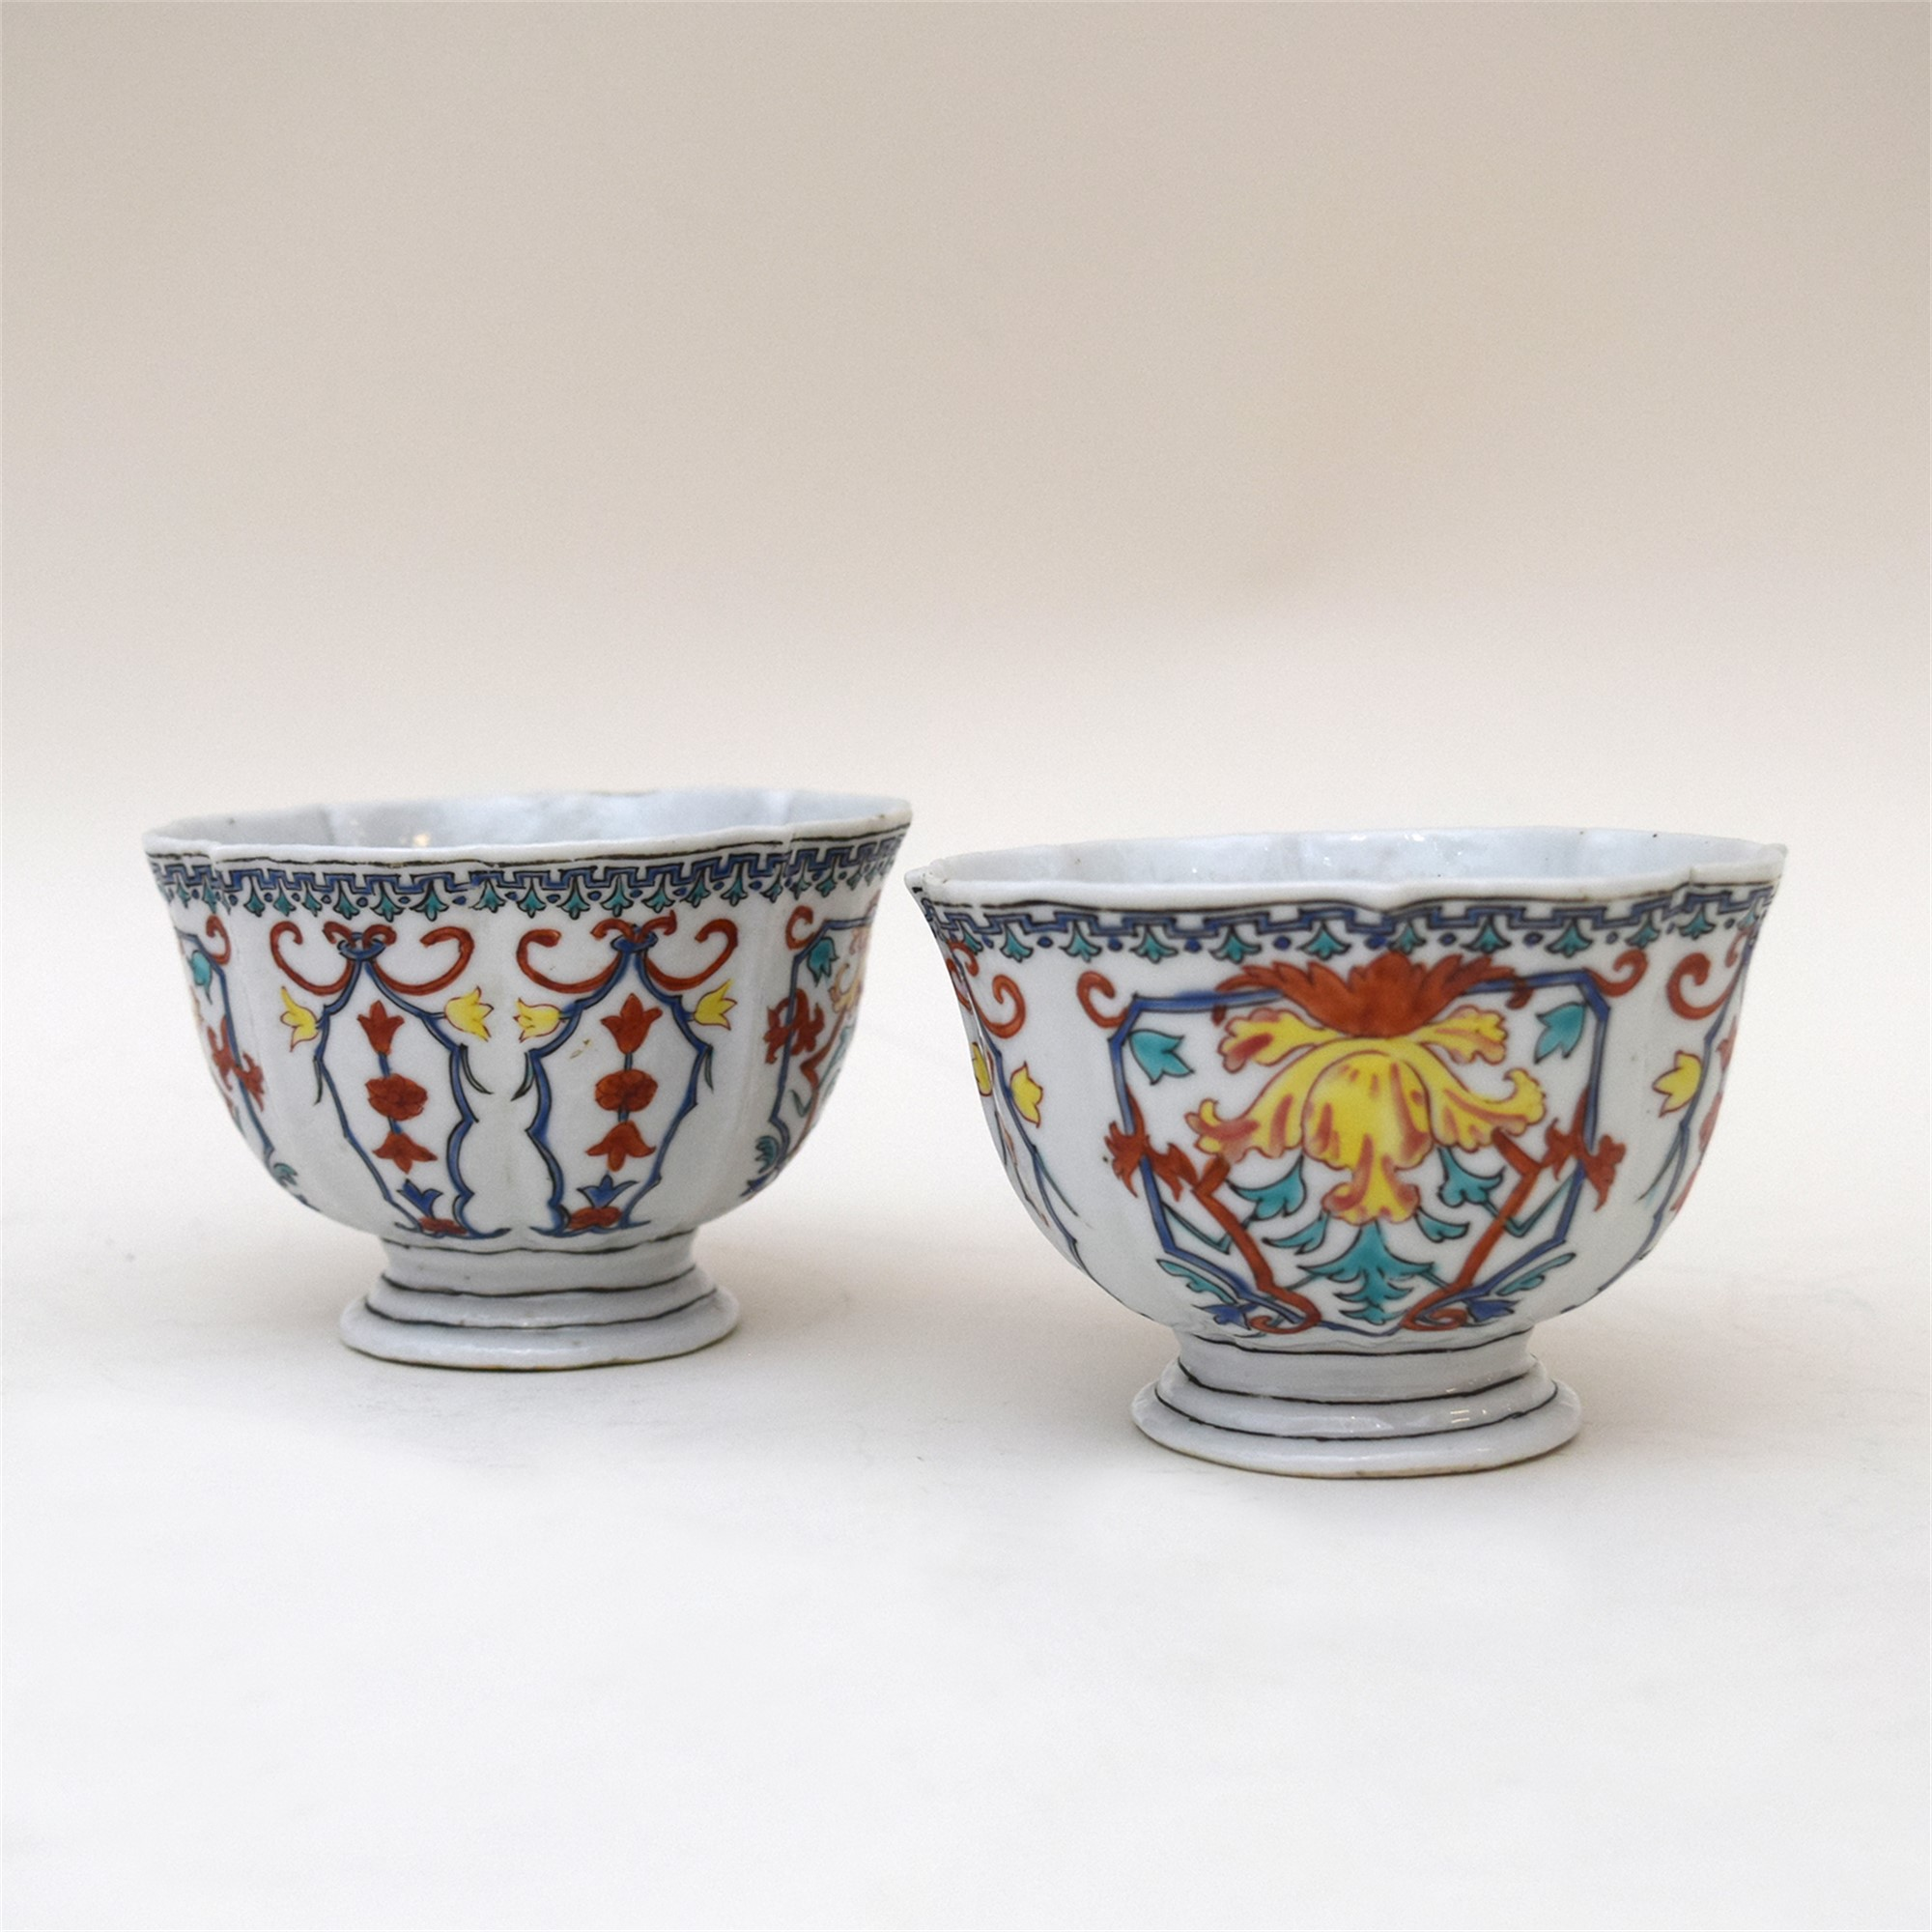 PAIR OF POLYCHROME FOOTED BOWLS AFTER VEZZI